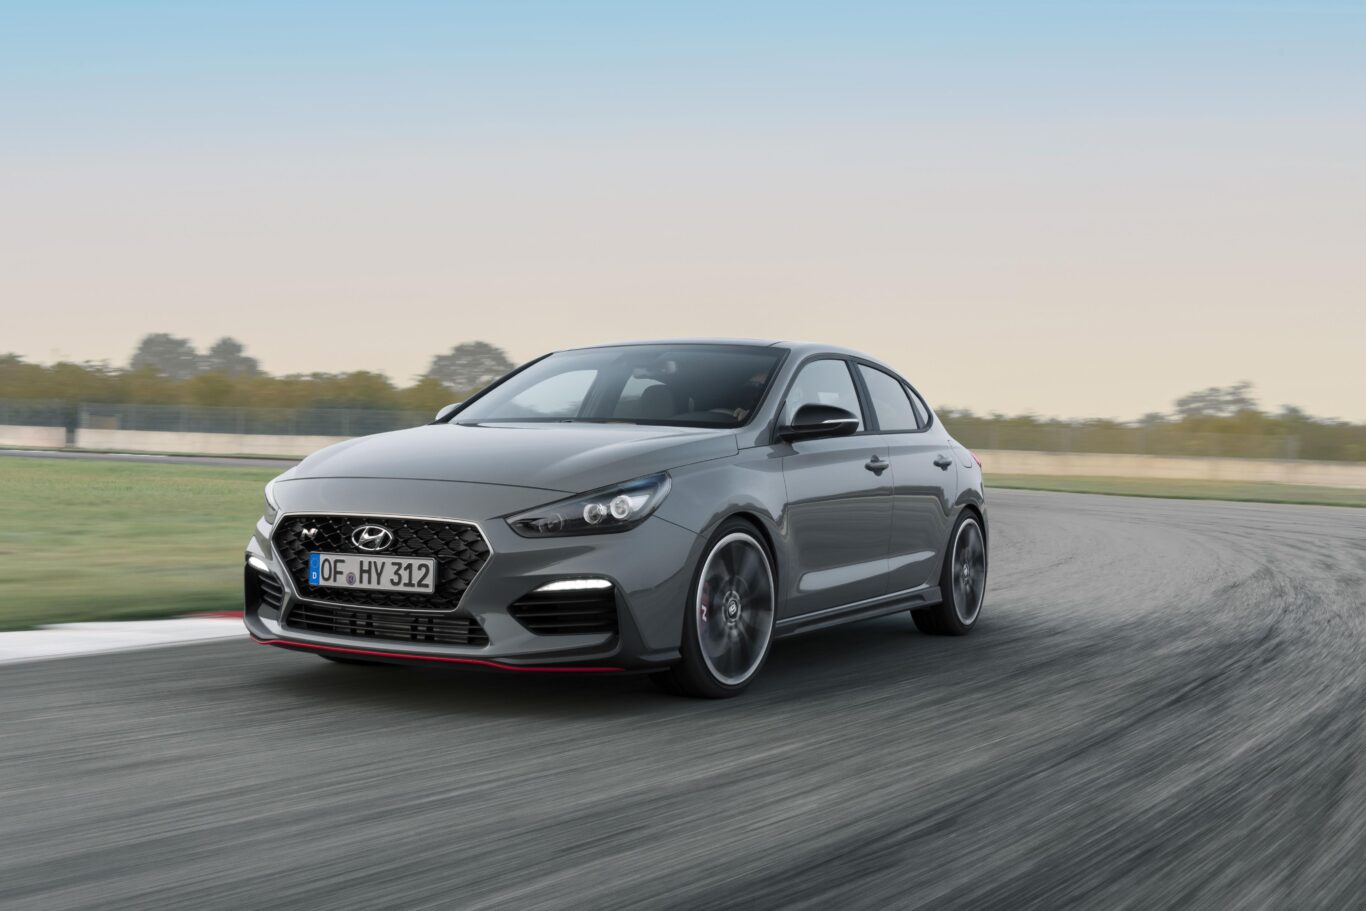 Hyundai's i30N Fastback combines pace and practicality